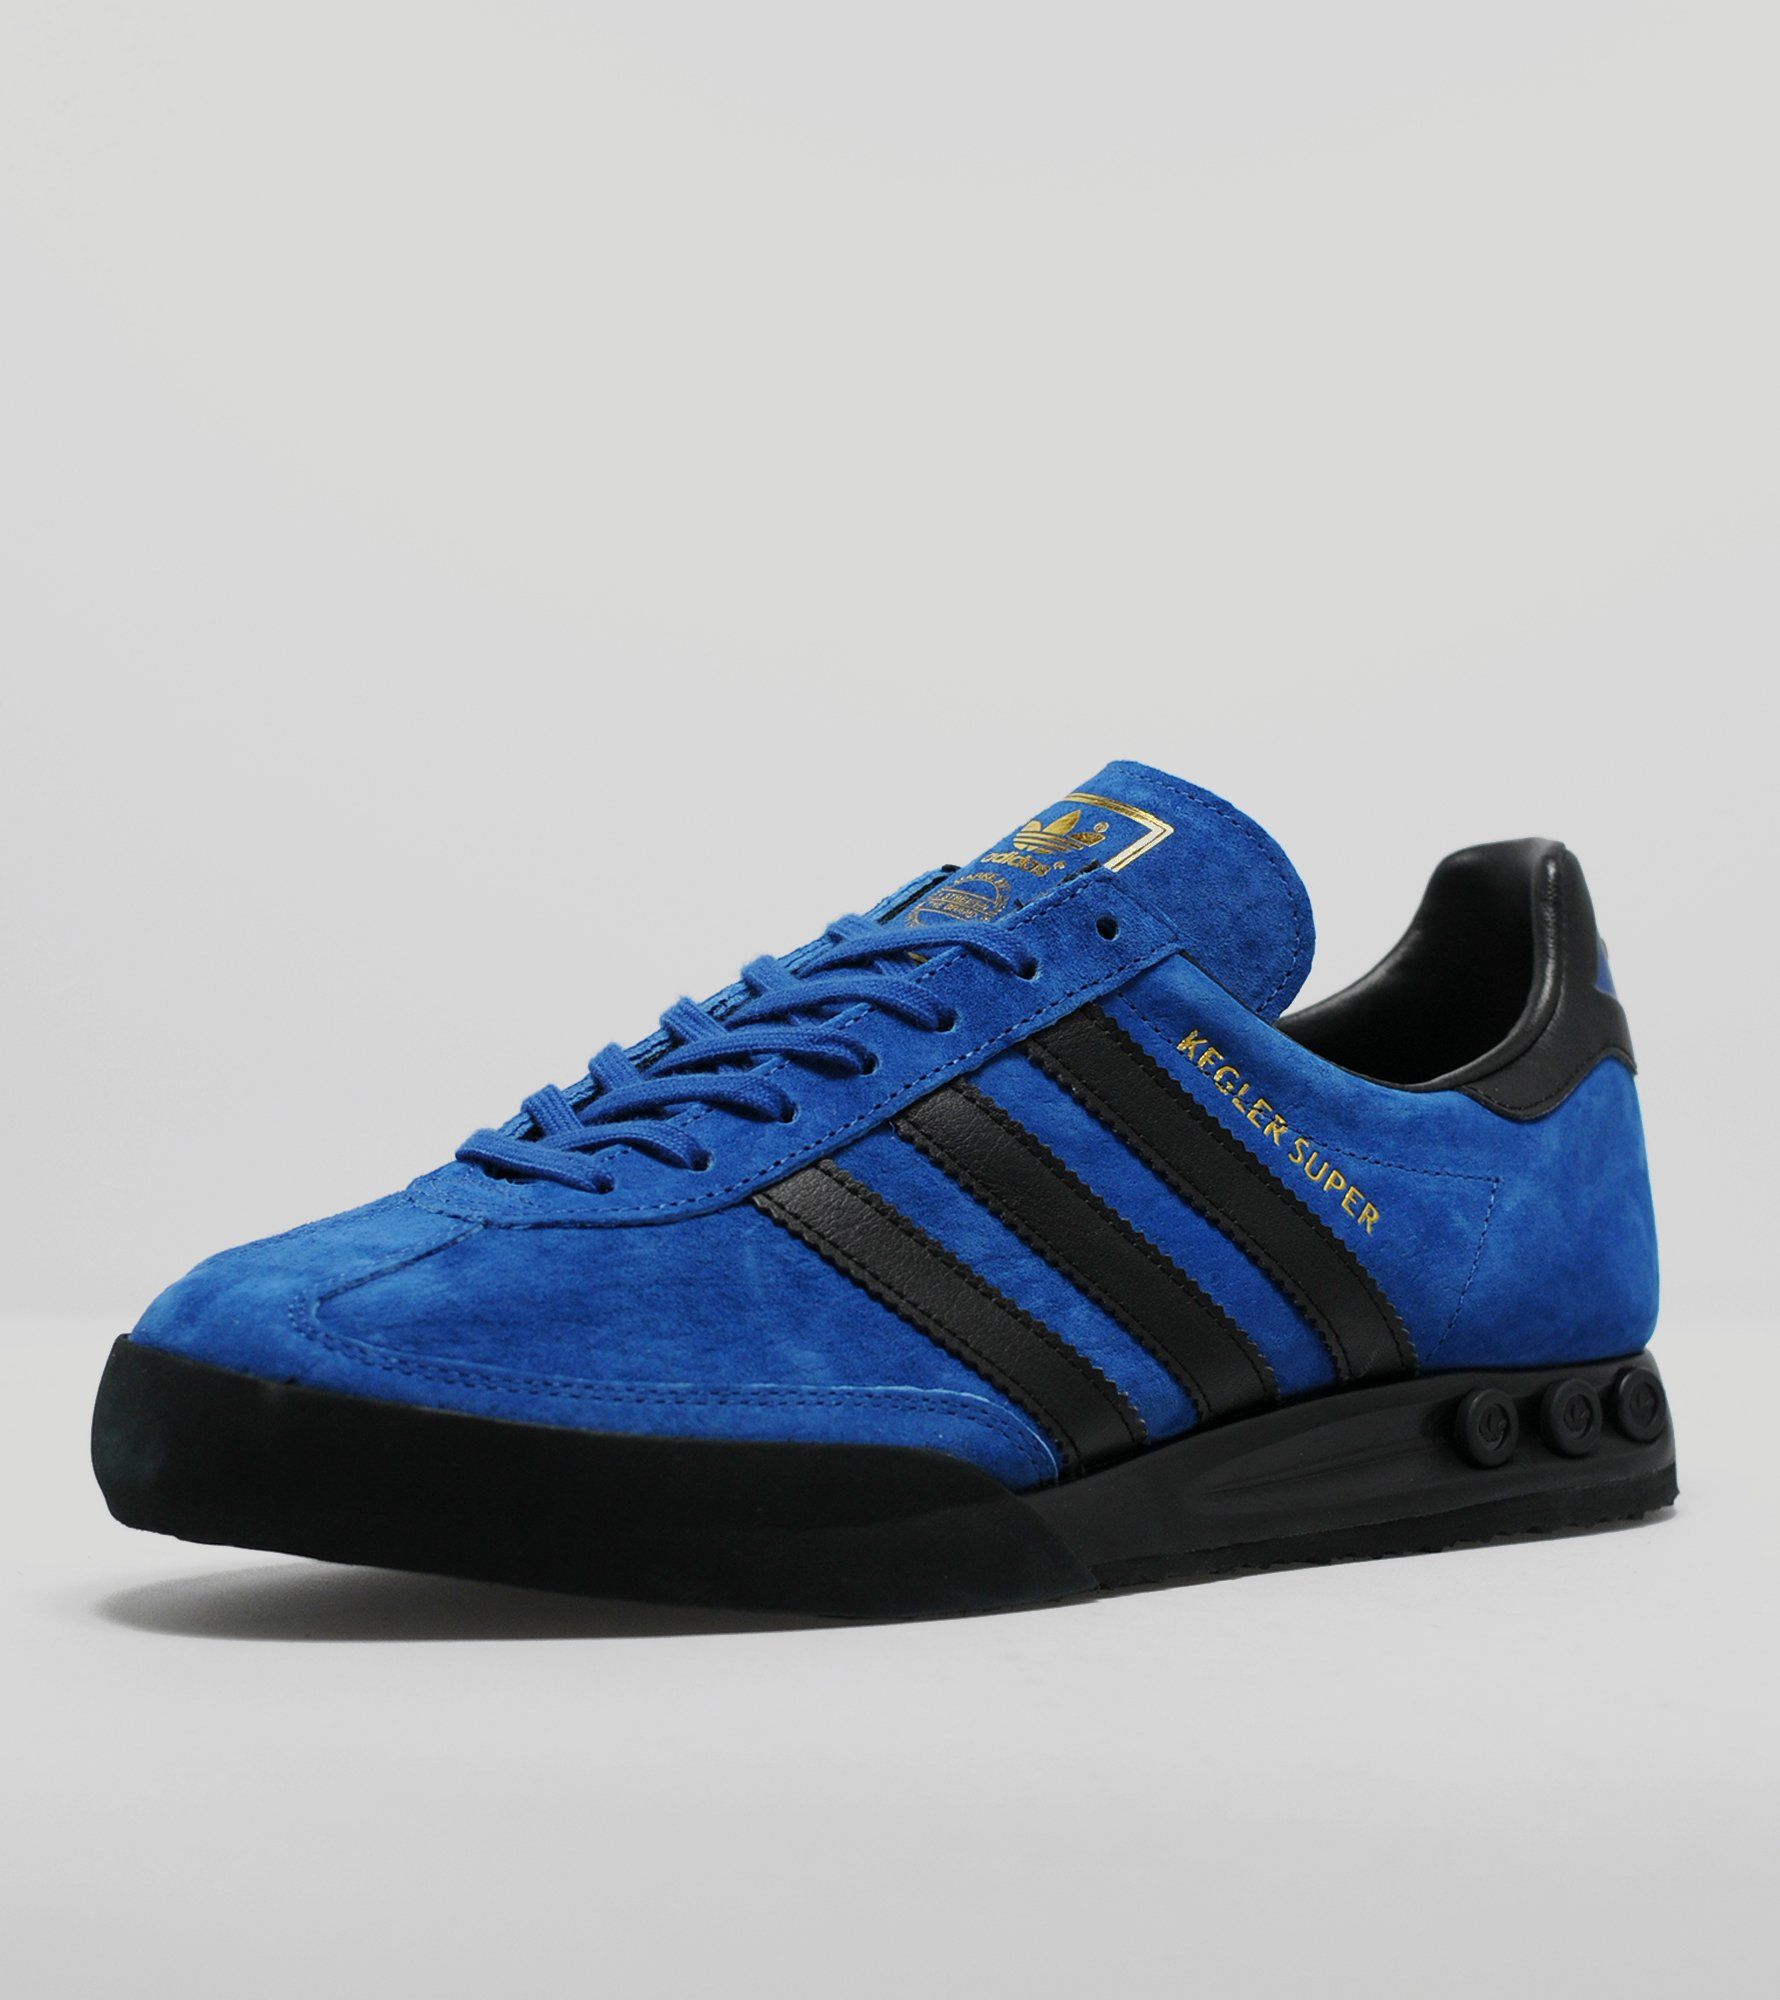 ... buy adidas originals kegler super size exclusive size 82f4d 74d34 4605e9332